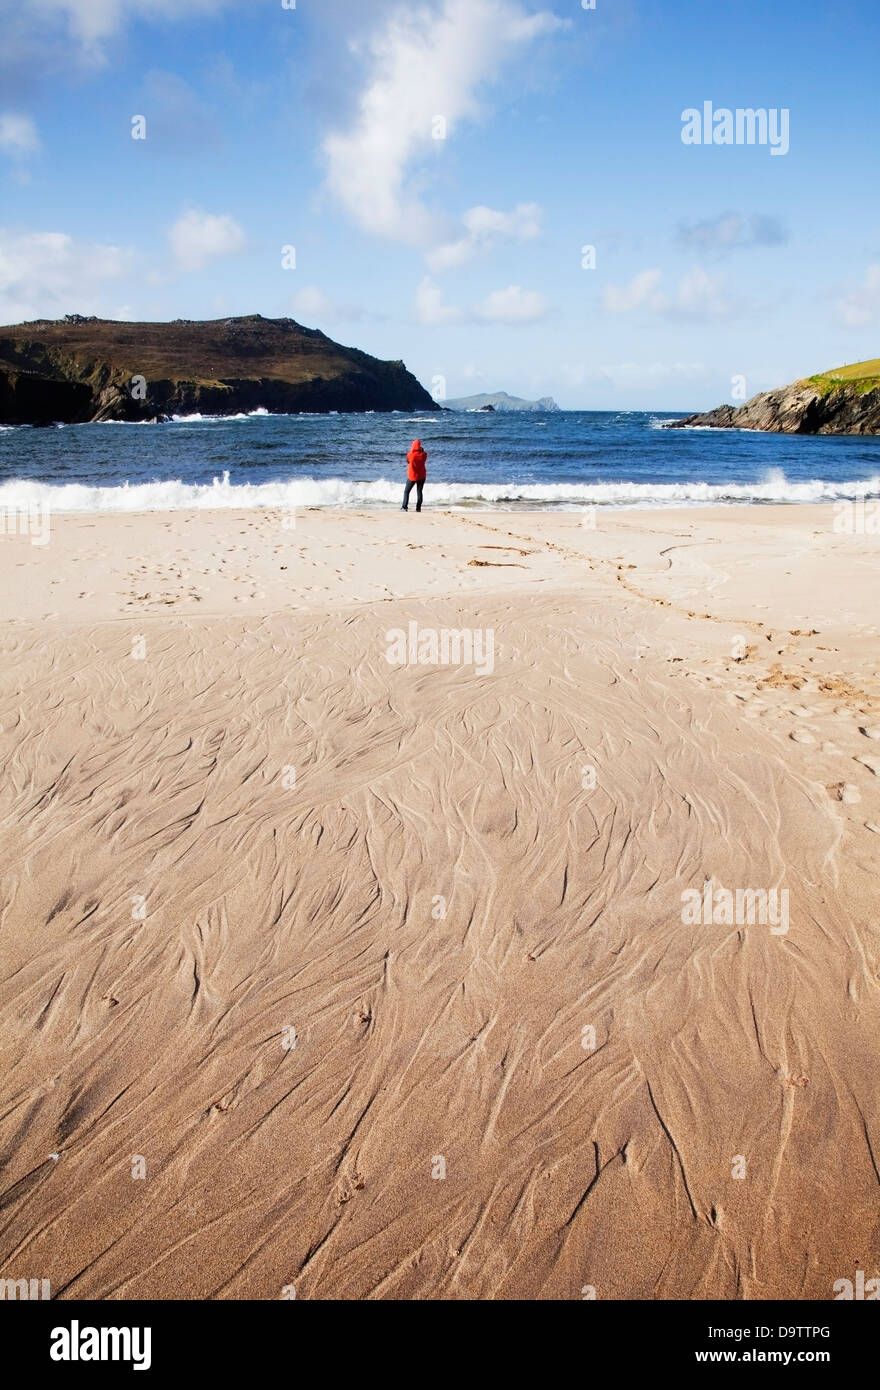 A woman standing on clogher beach in dingle;County kerry ireland Stock Photo